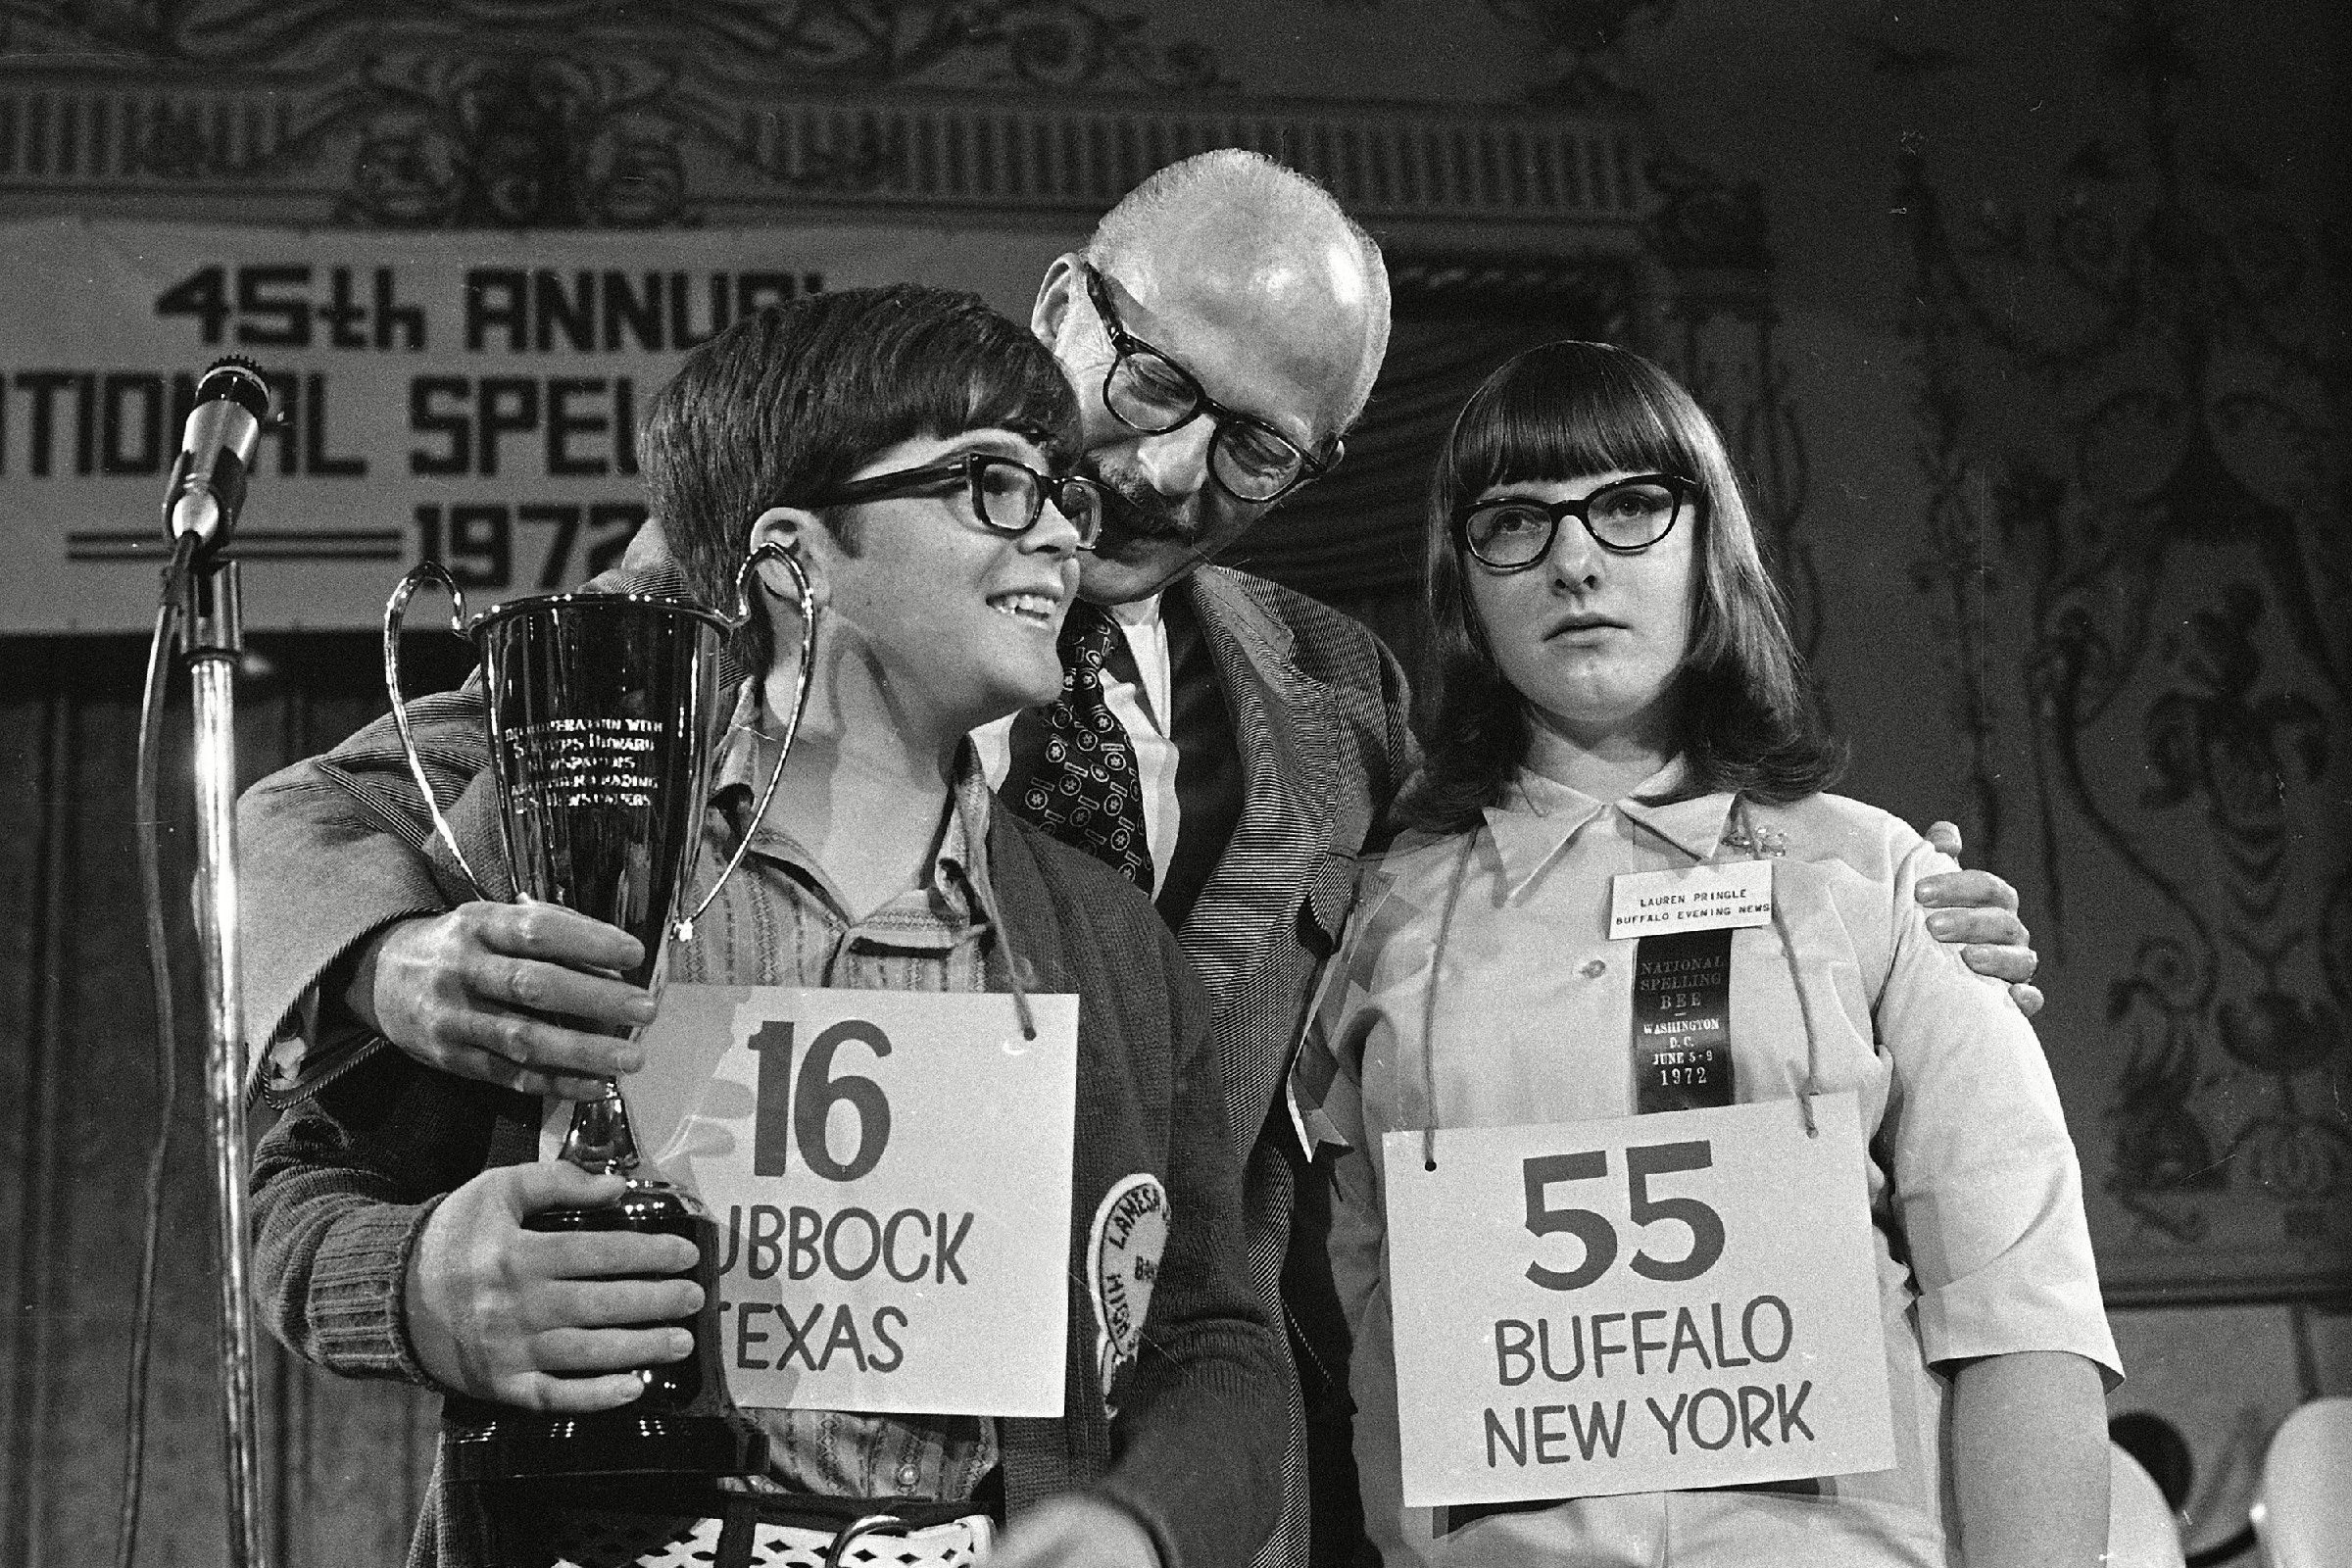 SPELLING BEE Robin Kral, 14, of Lubbock, Texas, left, holds his trophy after winning the 1972 National Spelling Bee in Washington. He out-spelled Lauren Pringle, 13, right, of Buffalo, N.Y., to win the title